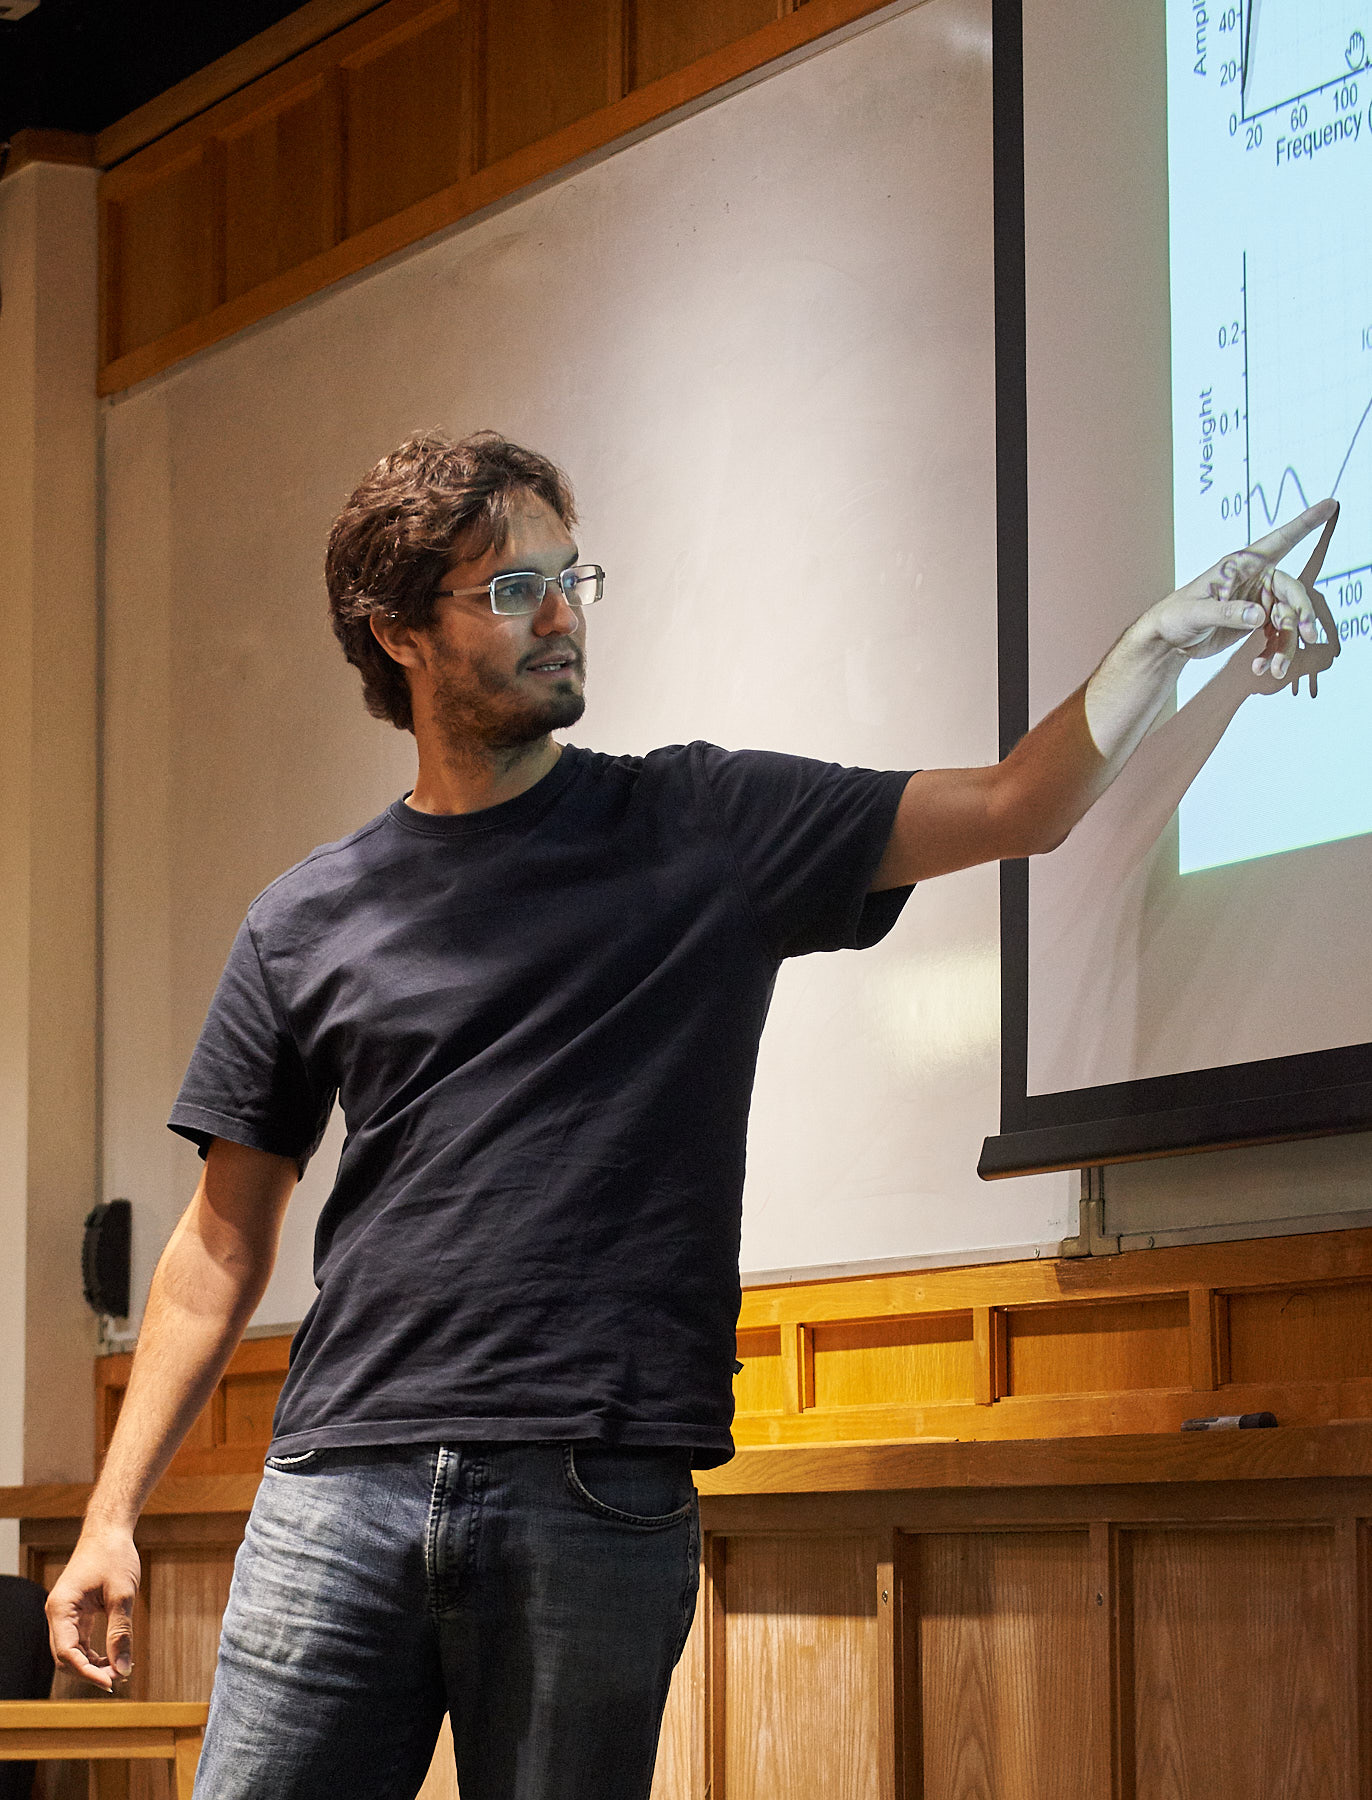 Unit postdoctoral scientist Vitor Lopes dos Santos sheds new light on the parsing of hippocampal oscillations.